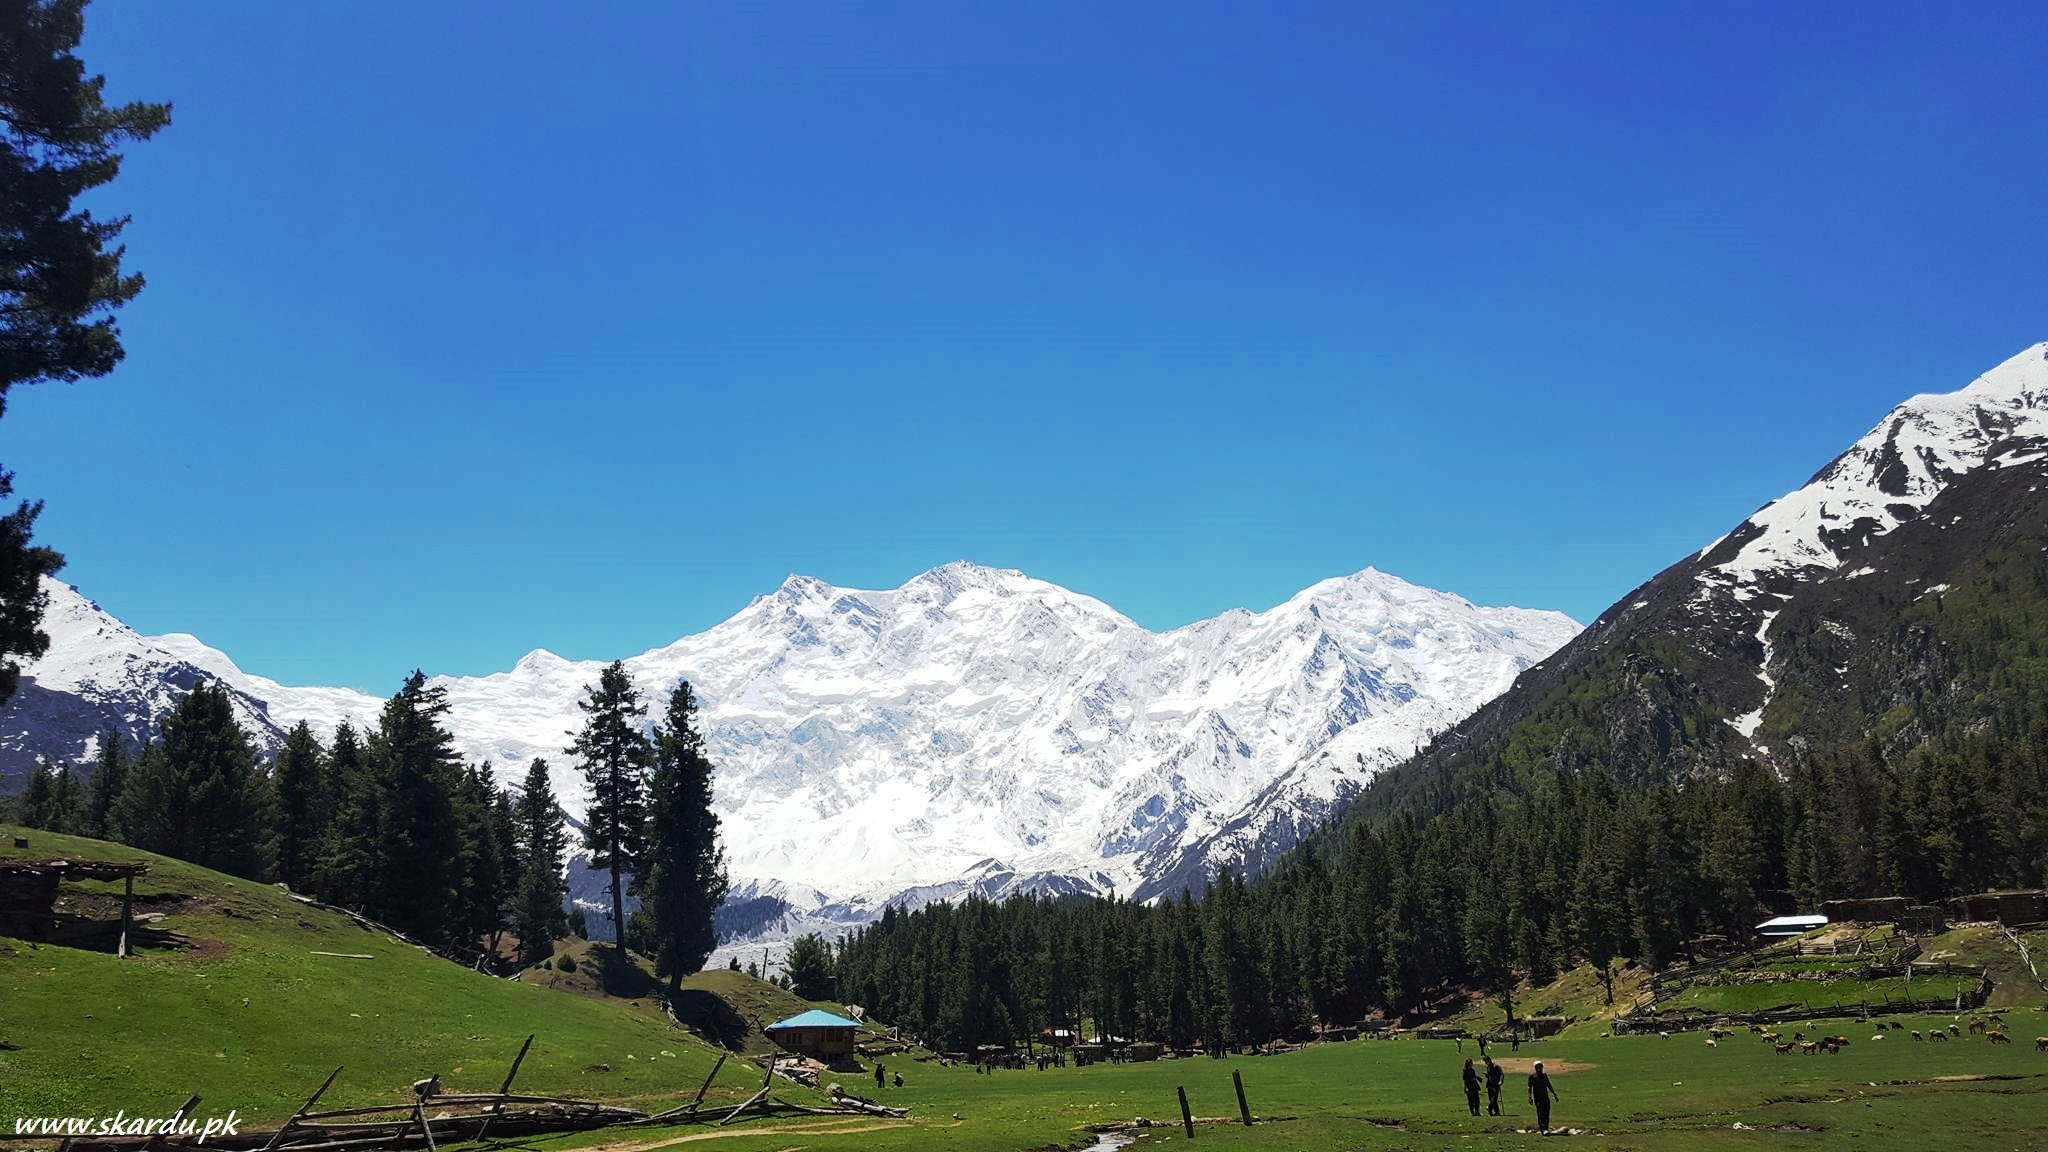 Nanga Parbat eight thousander